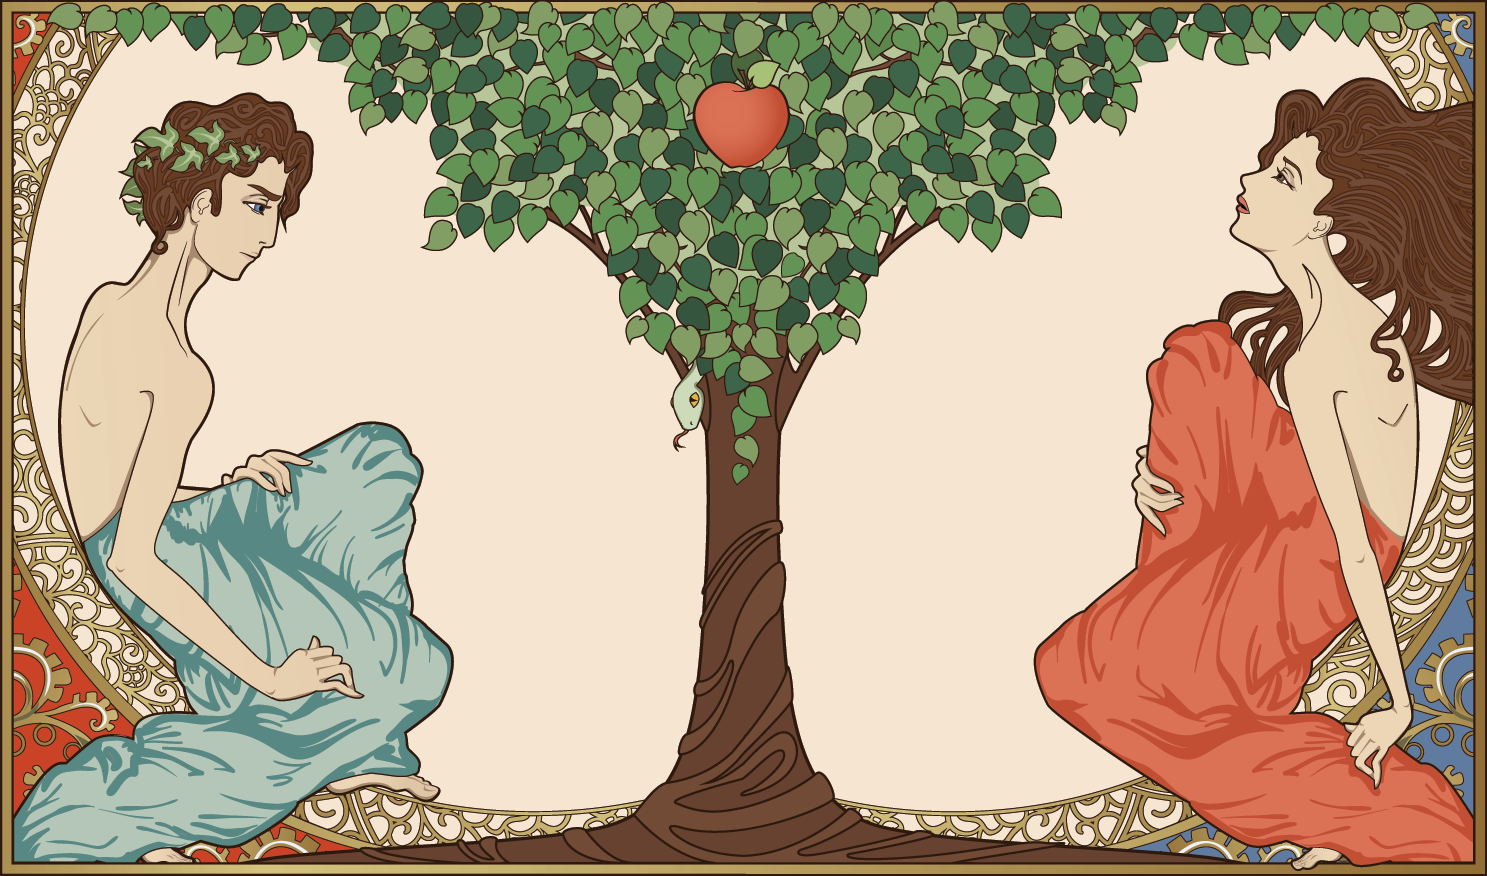 Let's Talk About Food: The Apple Wasn't the Problem